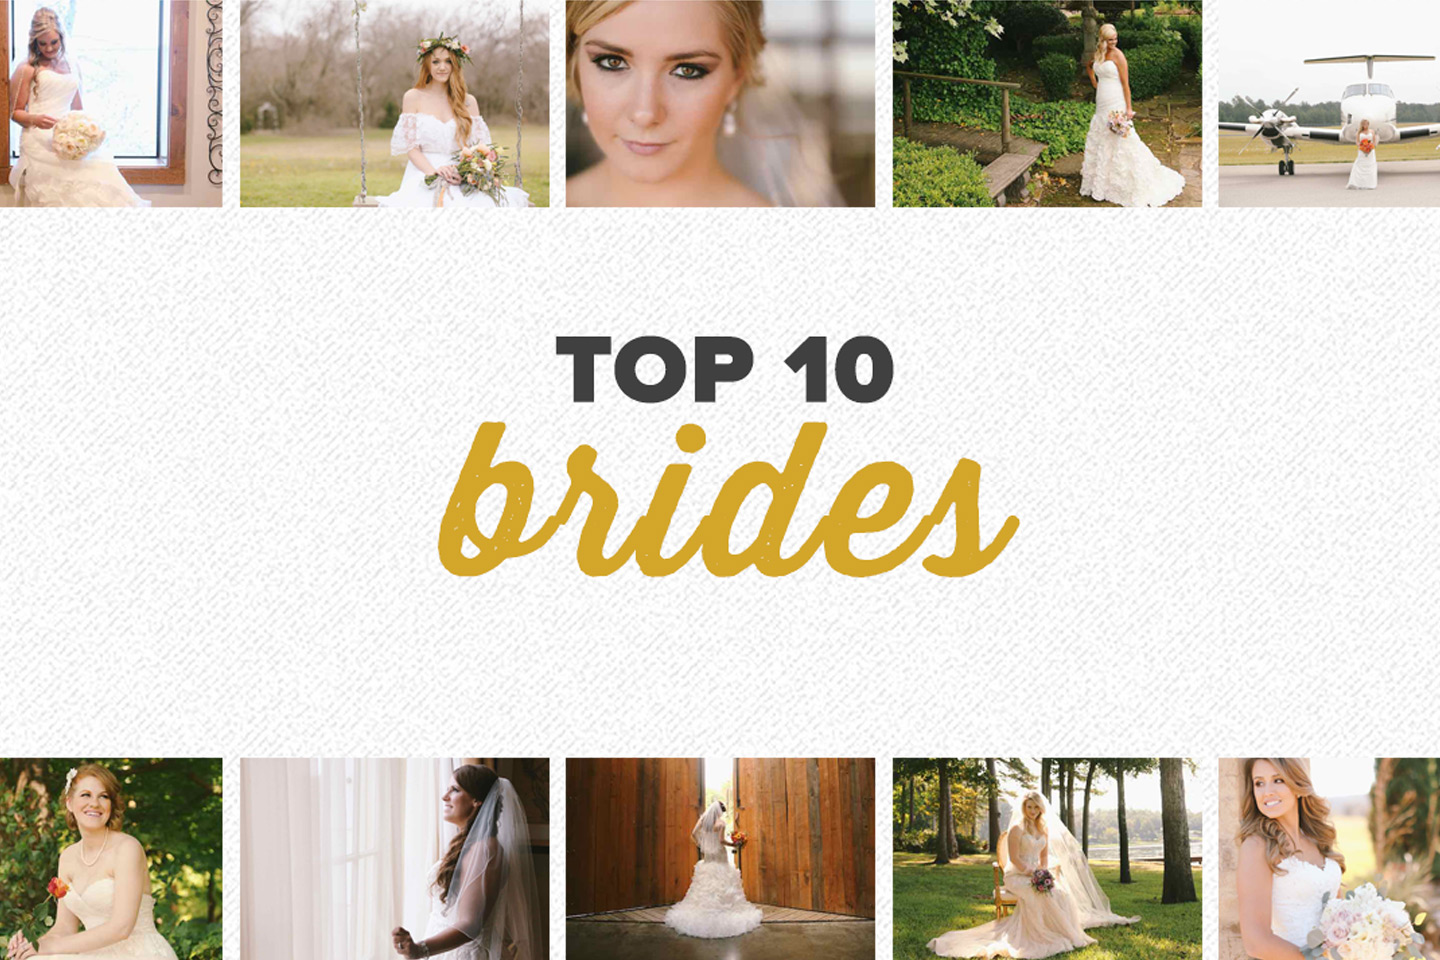 14065top 10 2015 | bridal photos